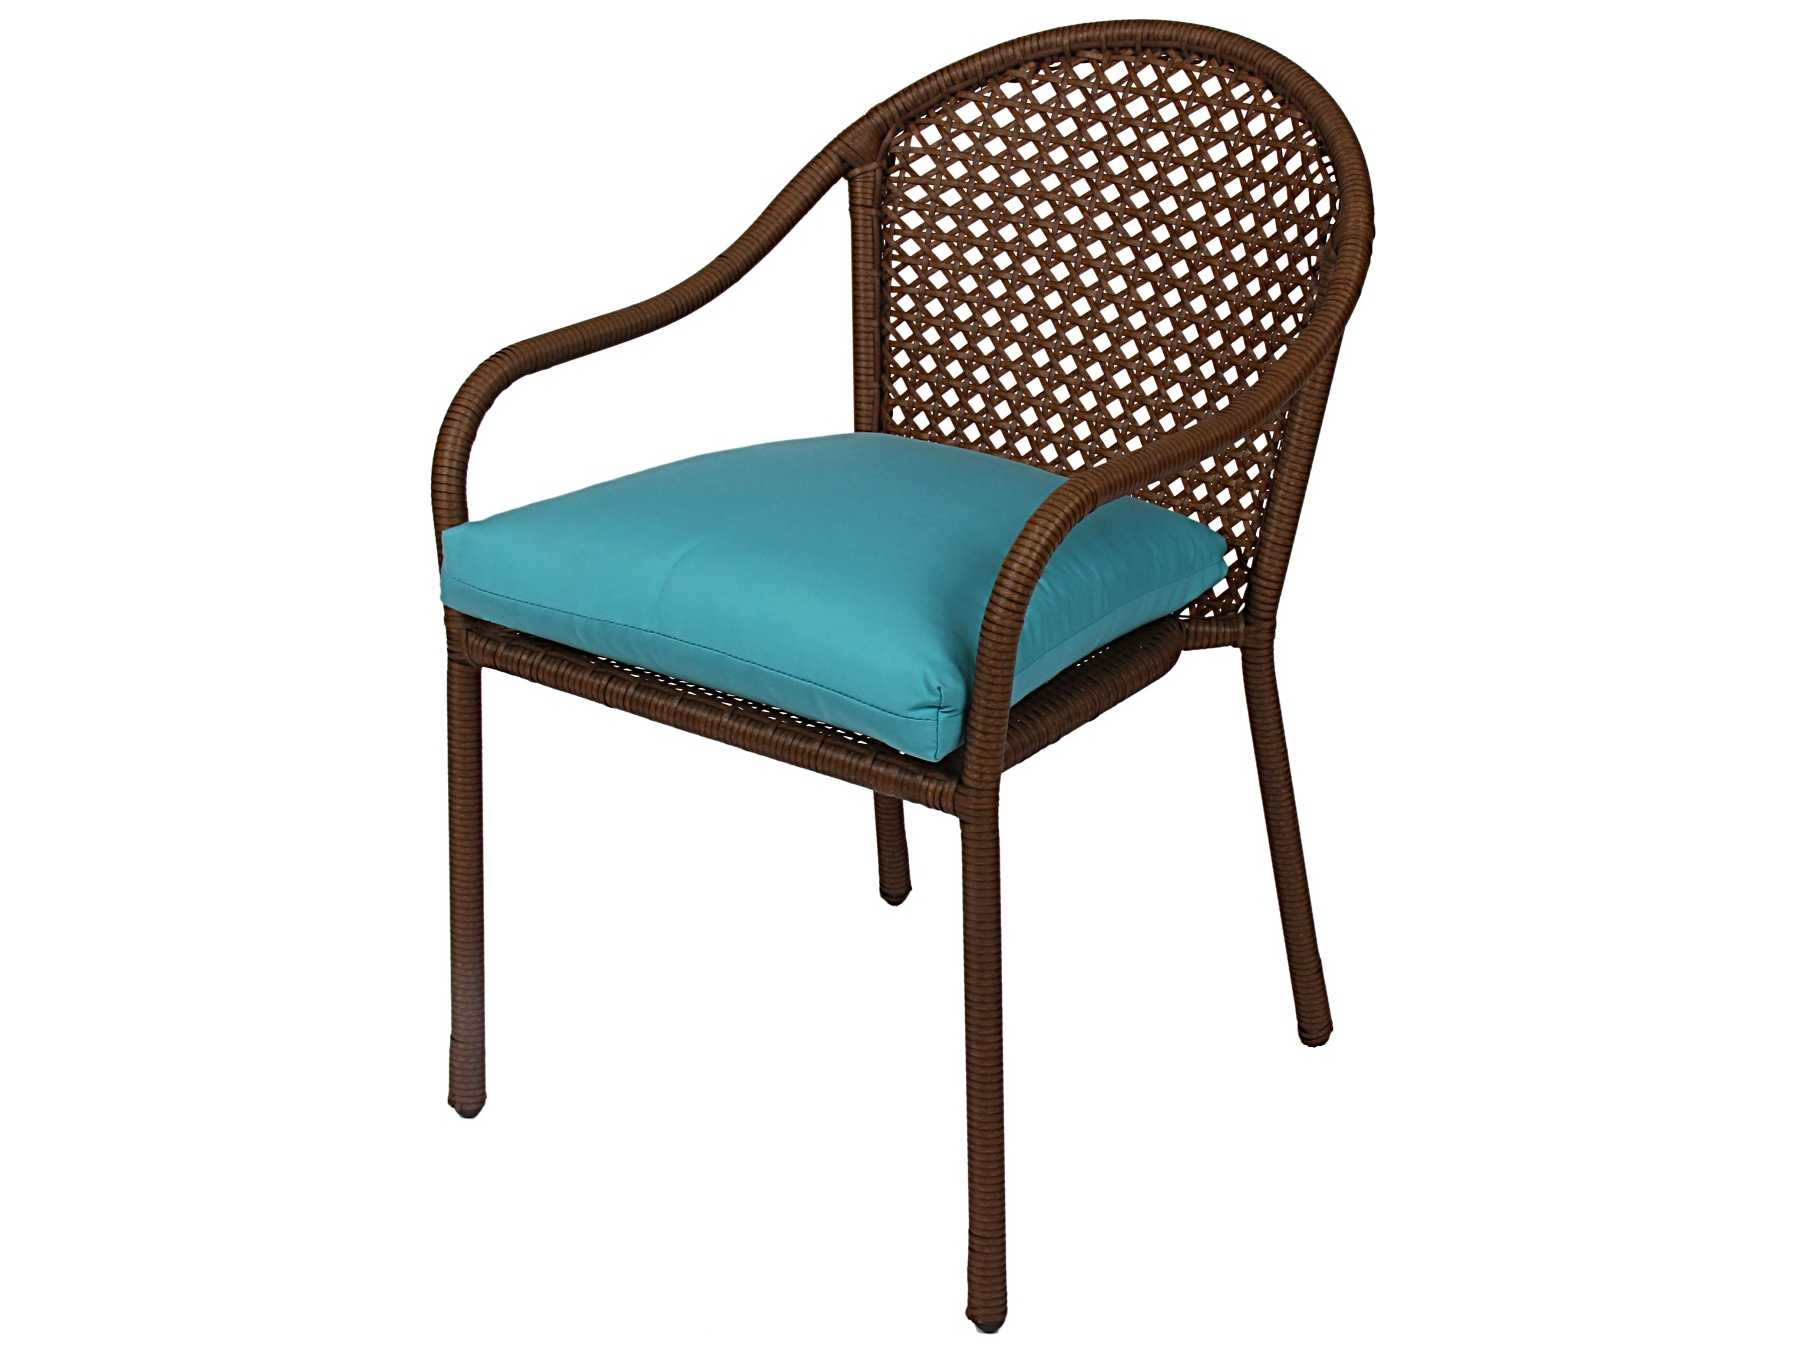 Suncoast Kona Cushion Wicker Bistro Dining Set